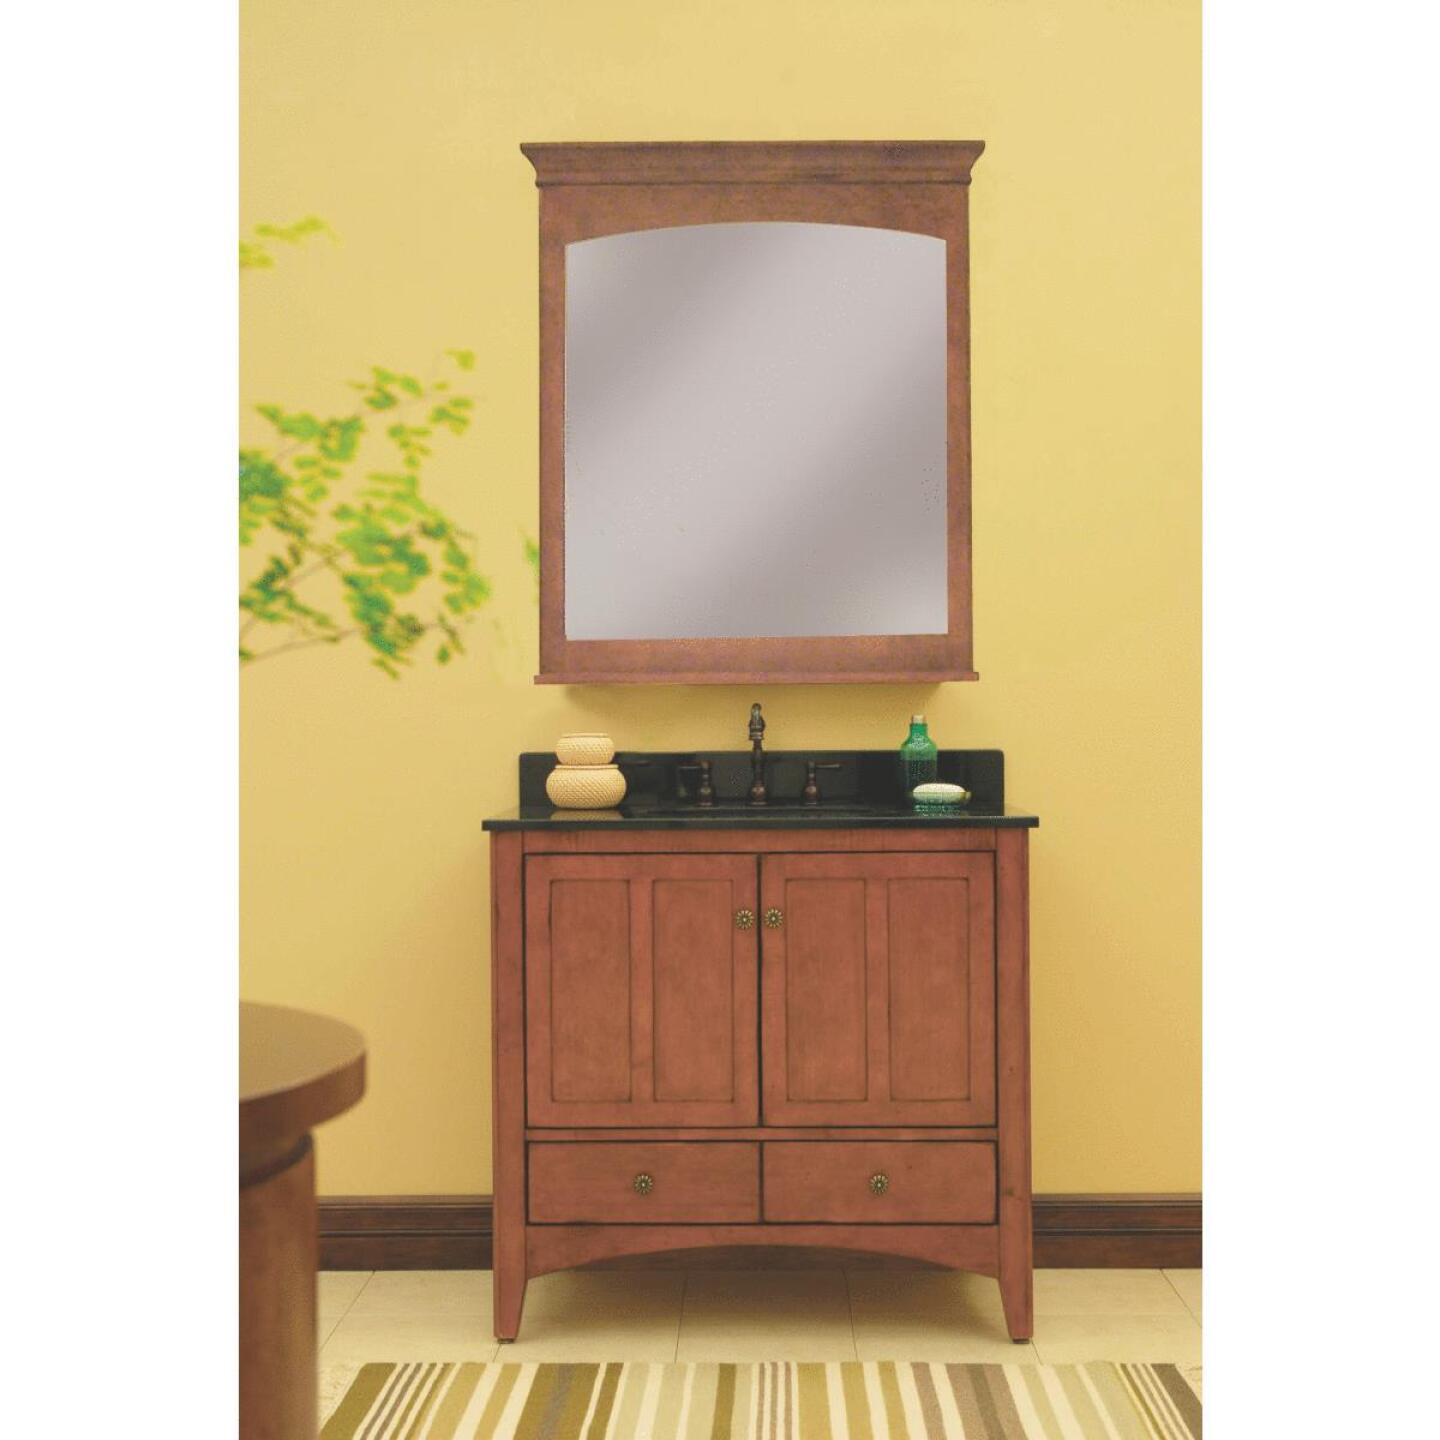 Sunny Wood Expressions Warm Cinnamon 36 In. W x 34 In. H x 21-1/4 In. D Vanity Base, 2 Door/2 Drawer Image 2